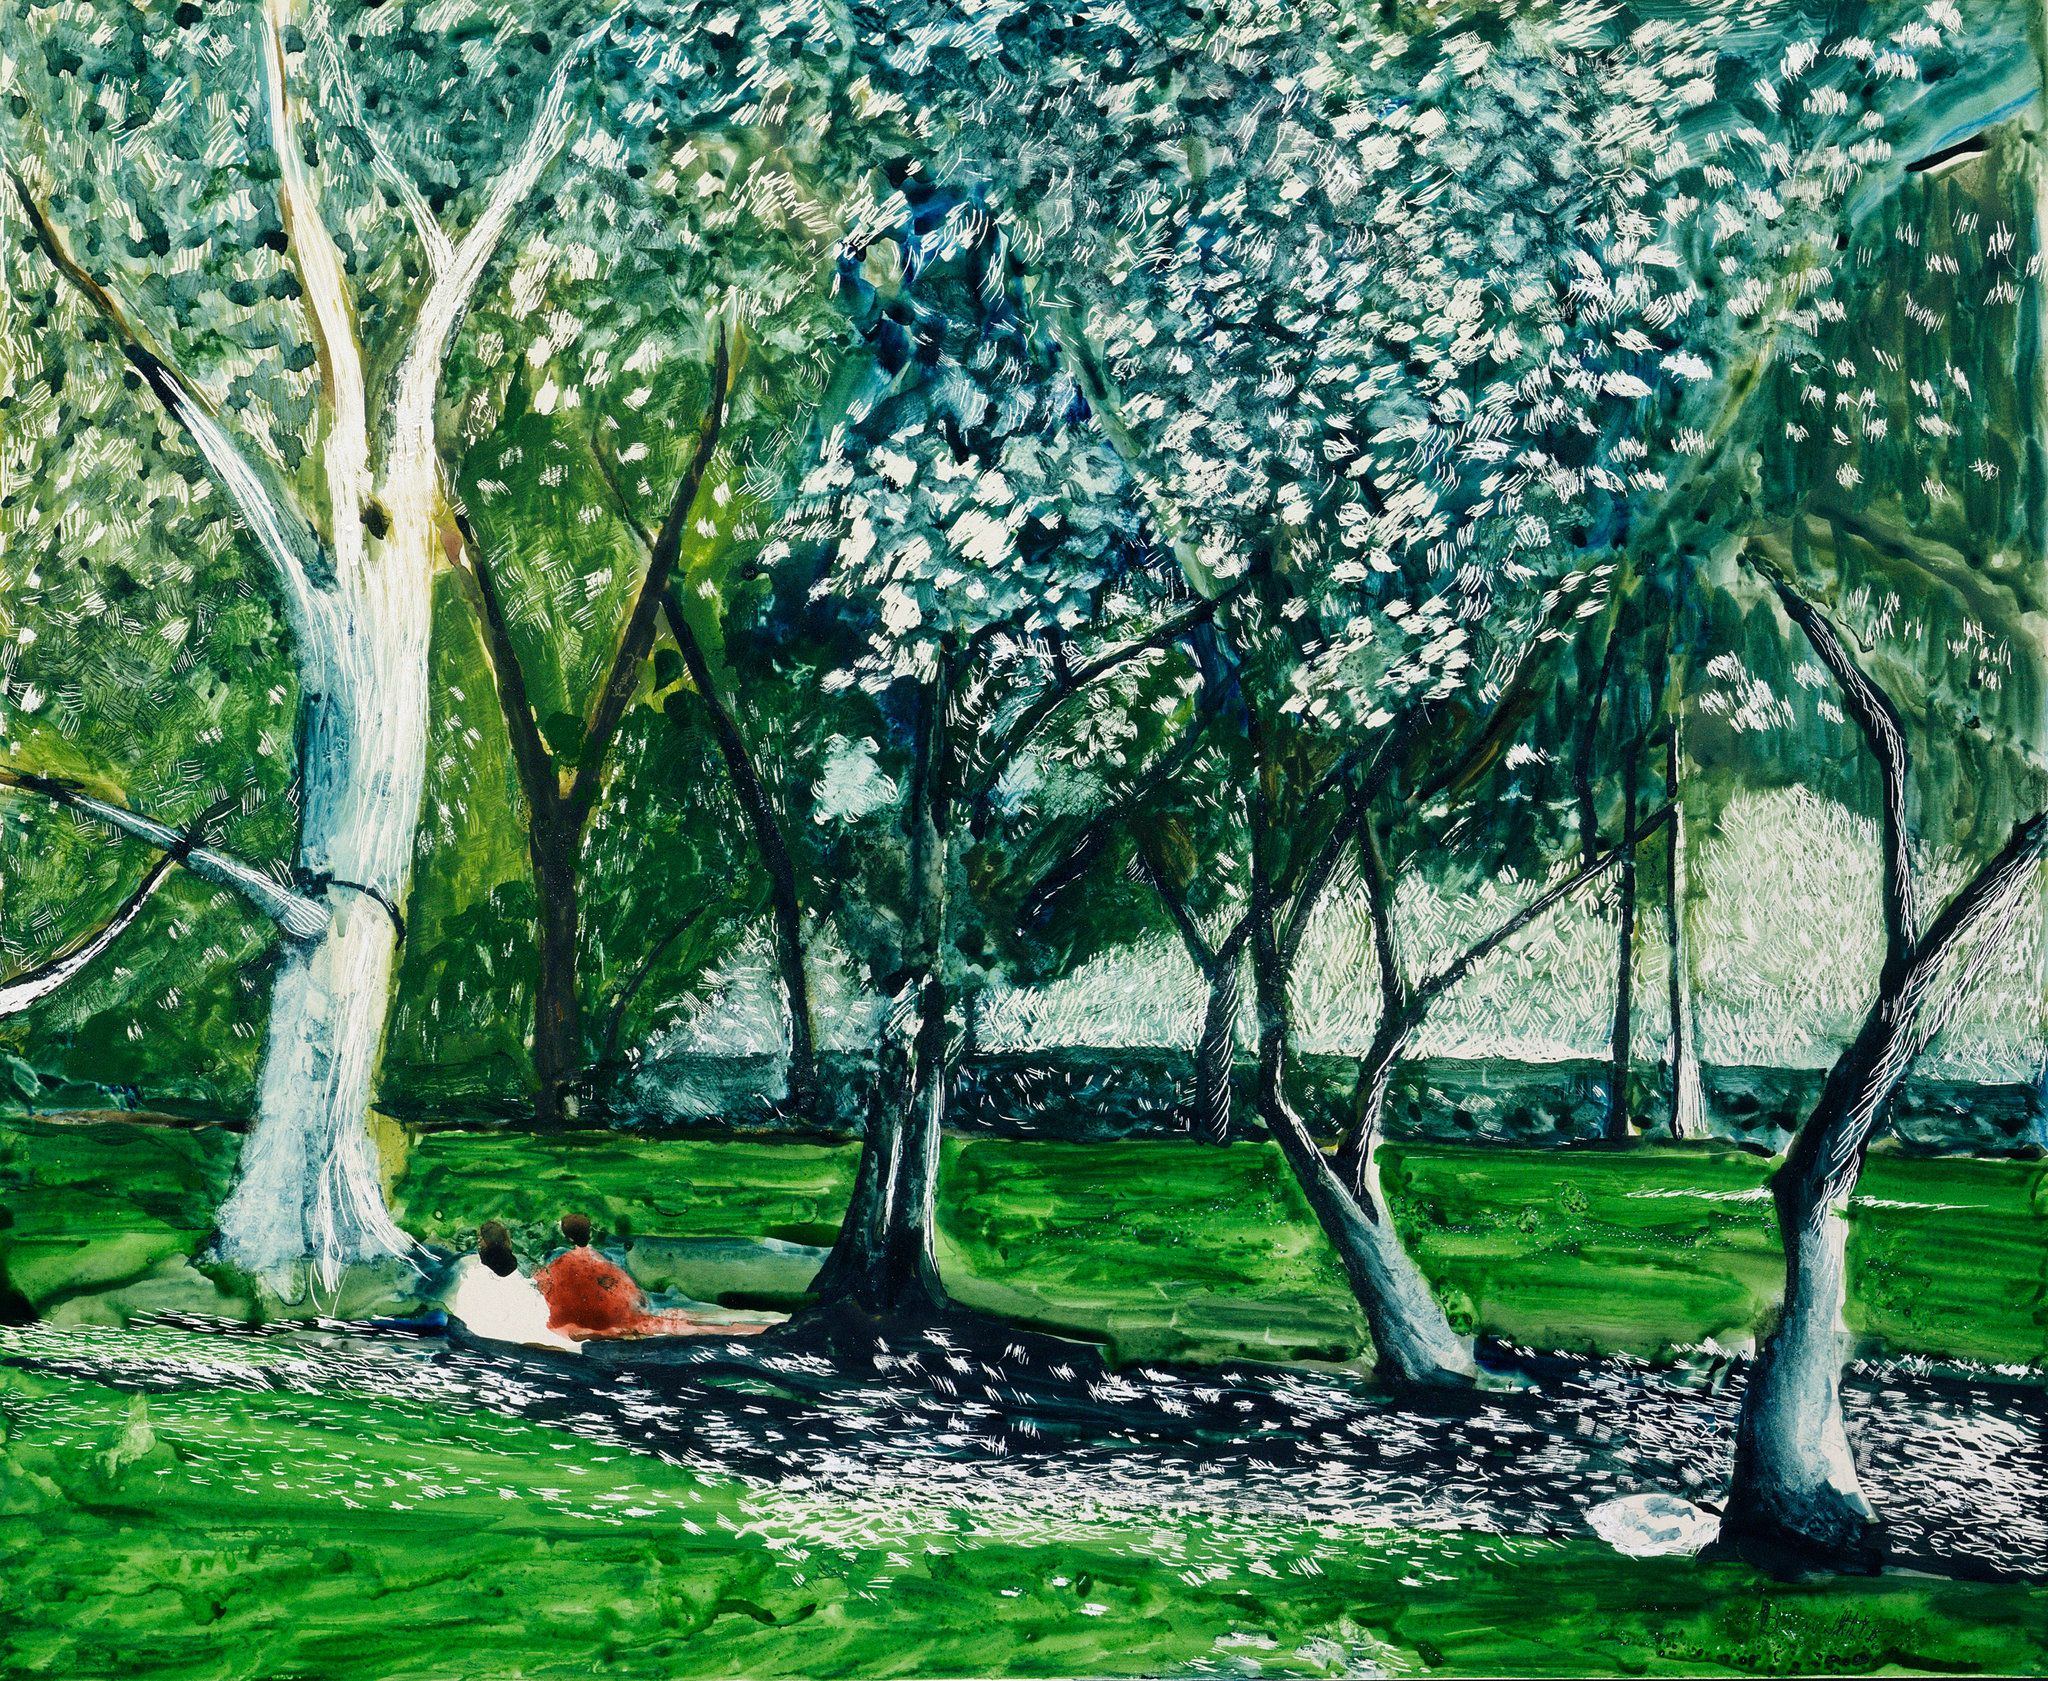 Mornings in Central Park, Tony Bennett can often be found indulging his passion for painting before the crowds arrive.